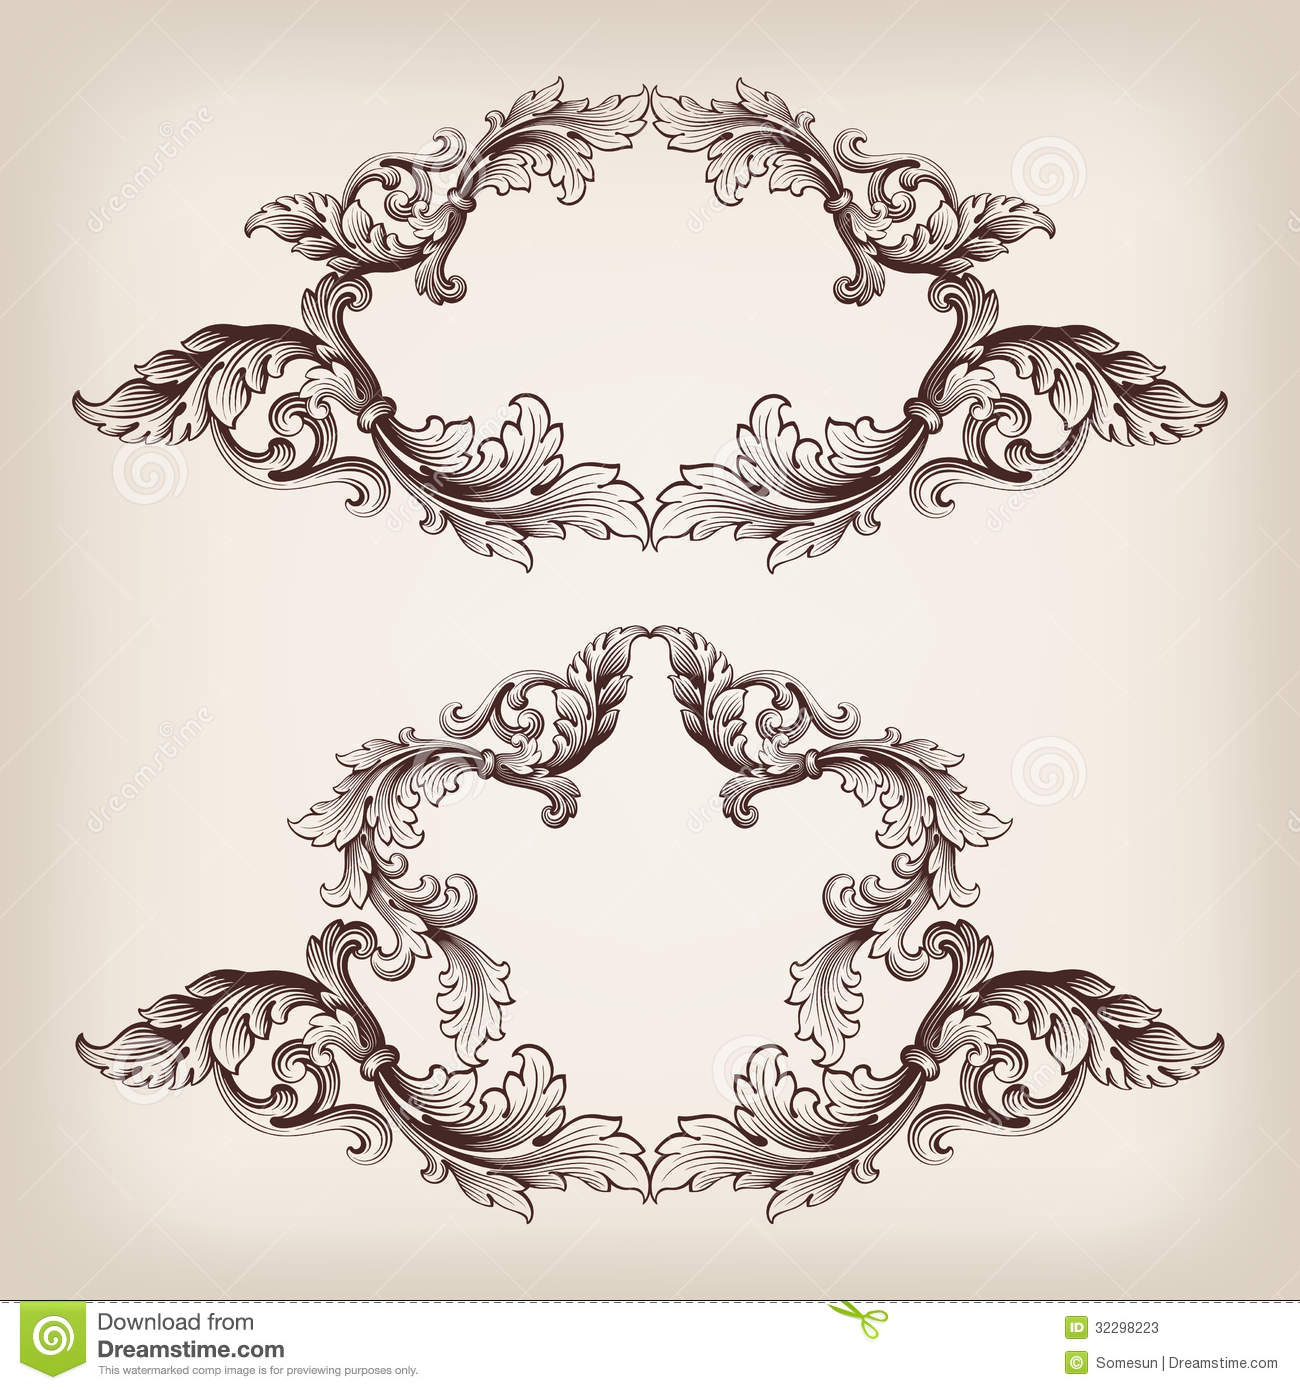 Vintage background ornate baroque pattern vector illustration stock - Vintage Set Border Frame Engraving Baroque Vector Stock Photos